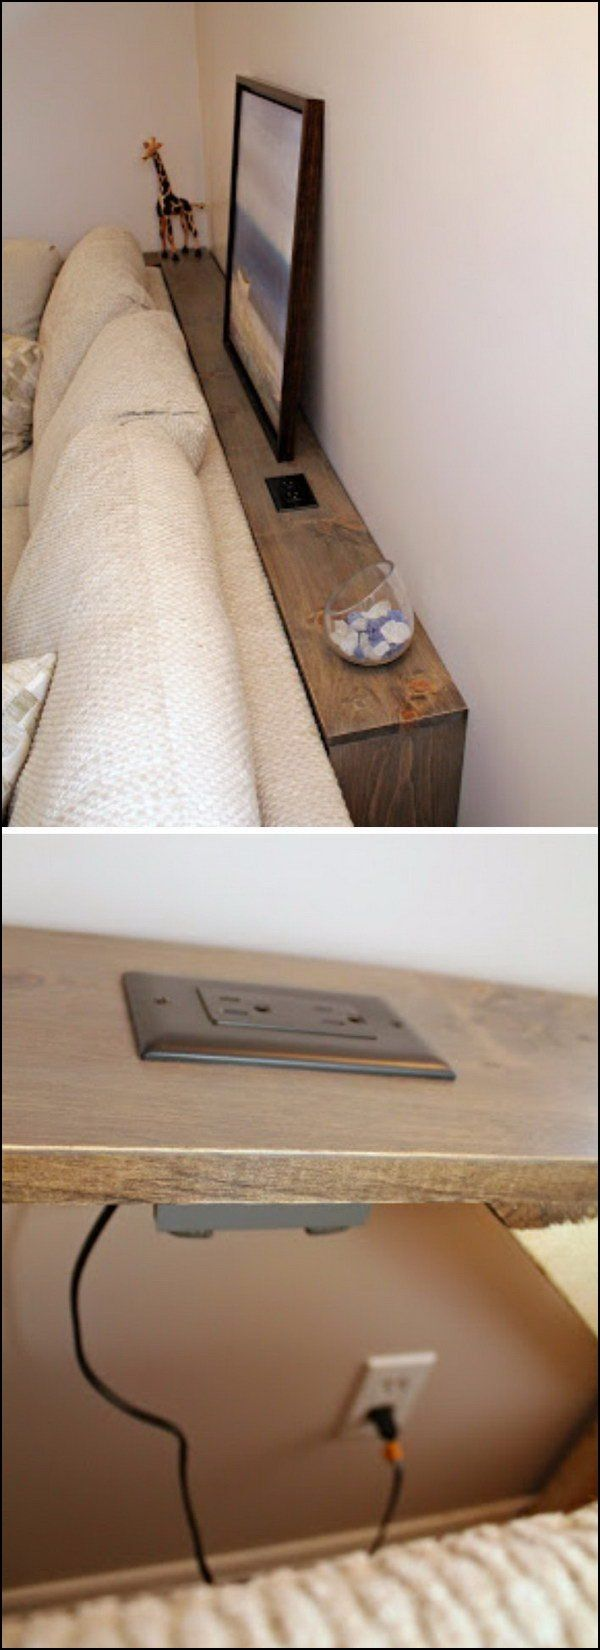 Couches With Outlets Home Decor Pinterest Outlets Living